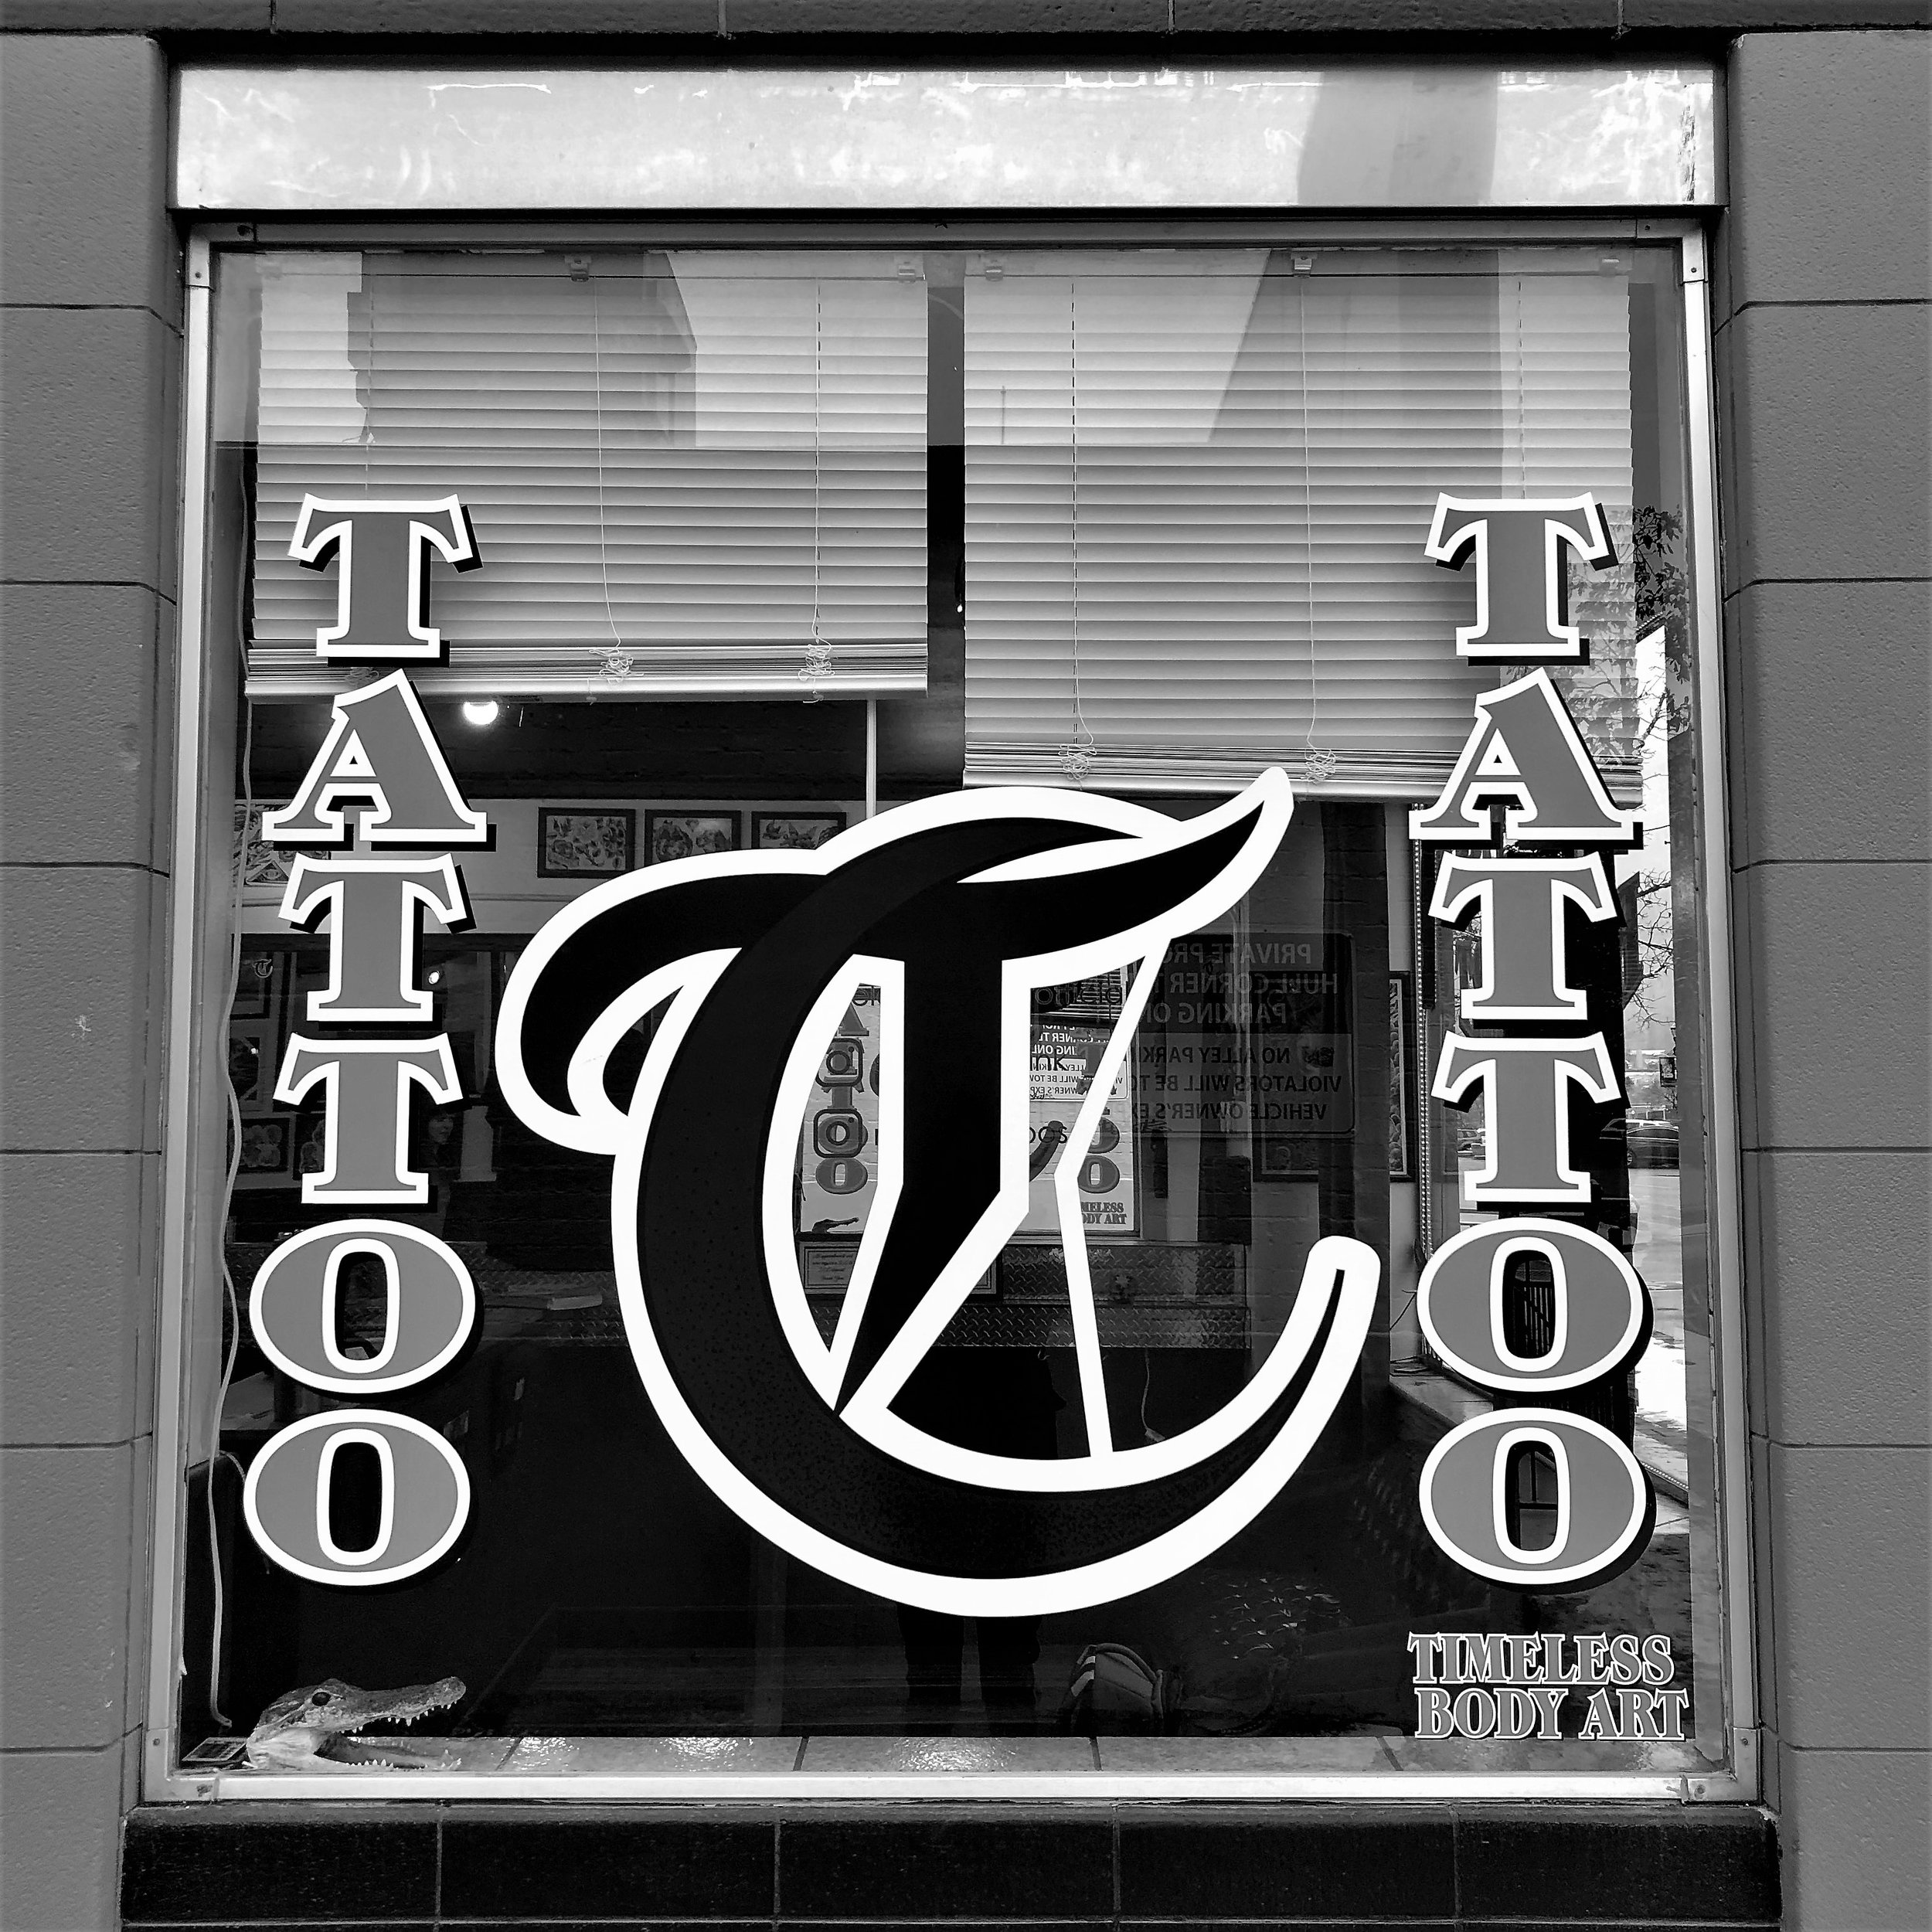 Timeless Body Art Downtown Colorado Springs Tattoo Shop